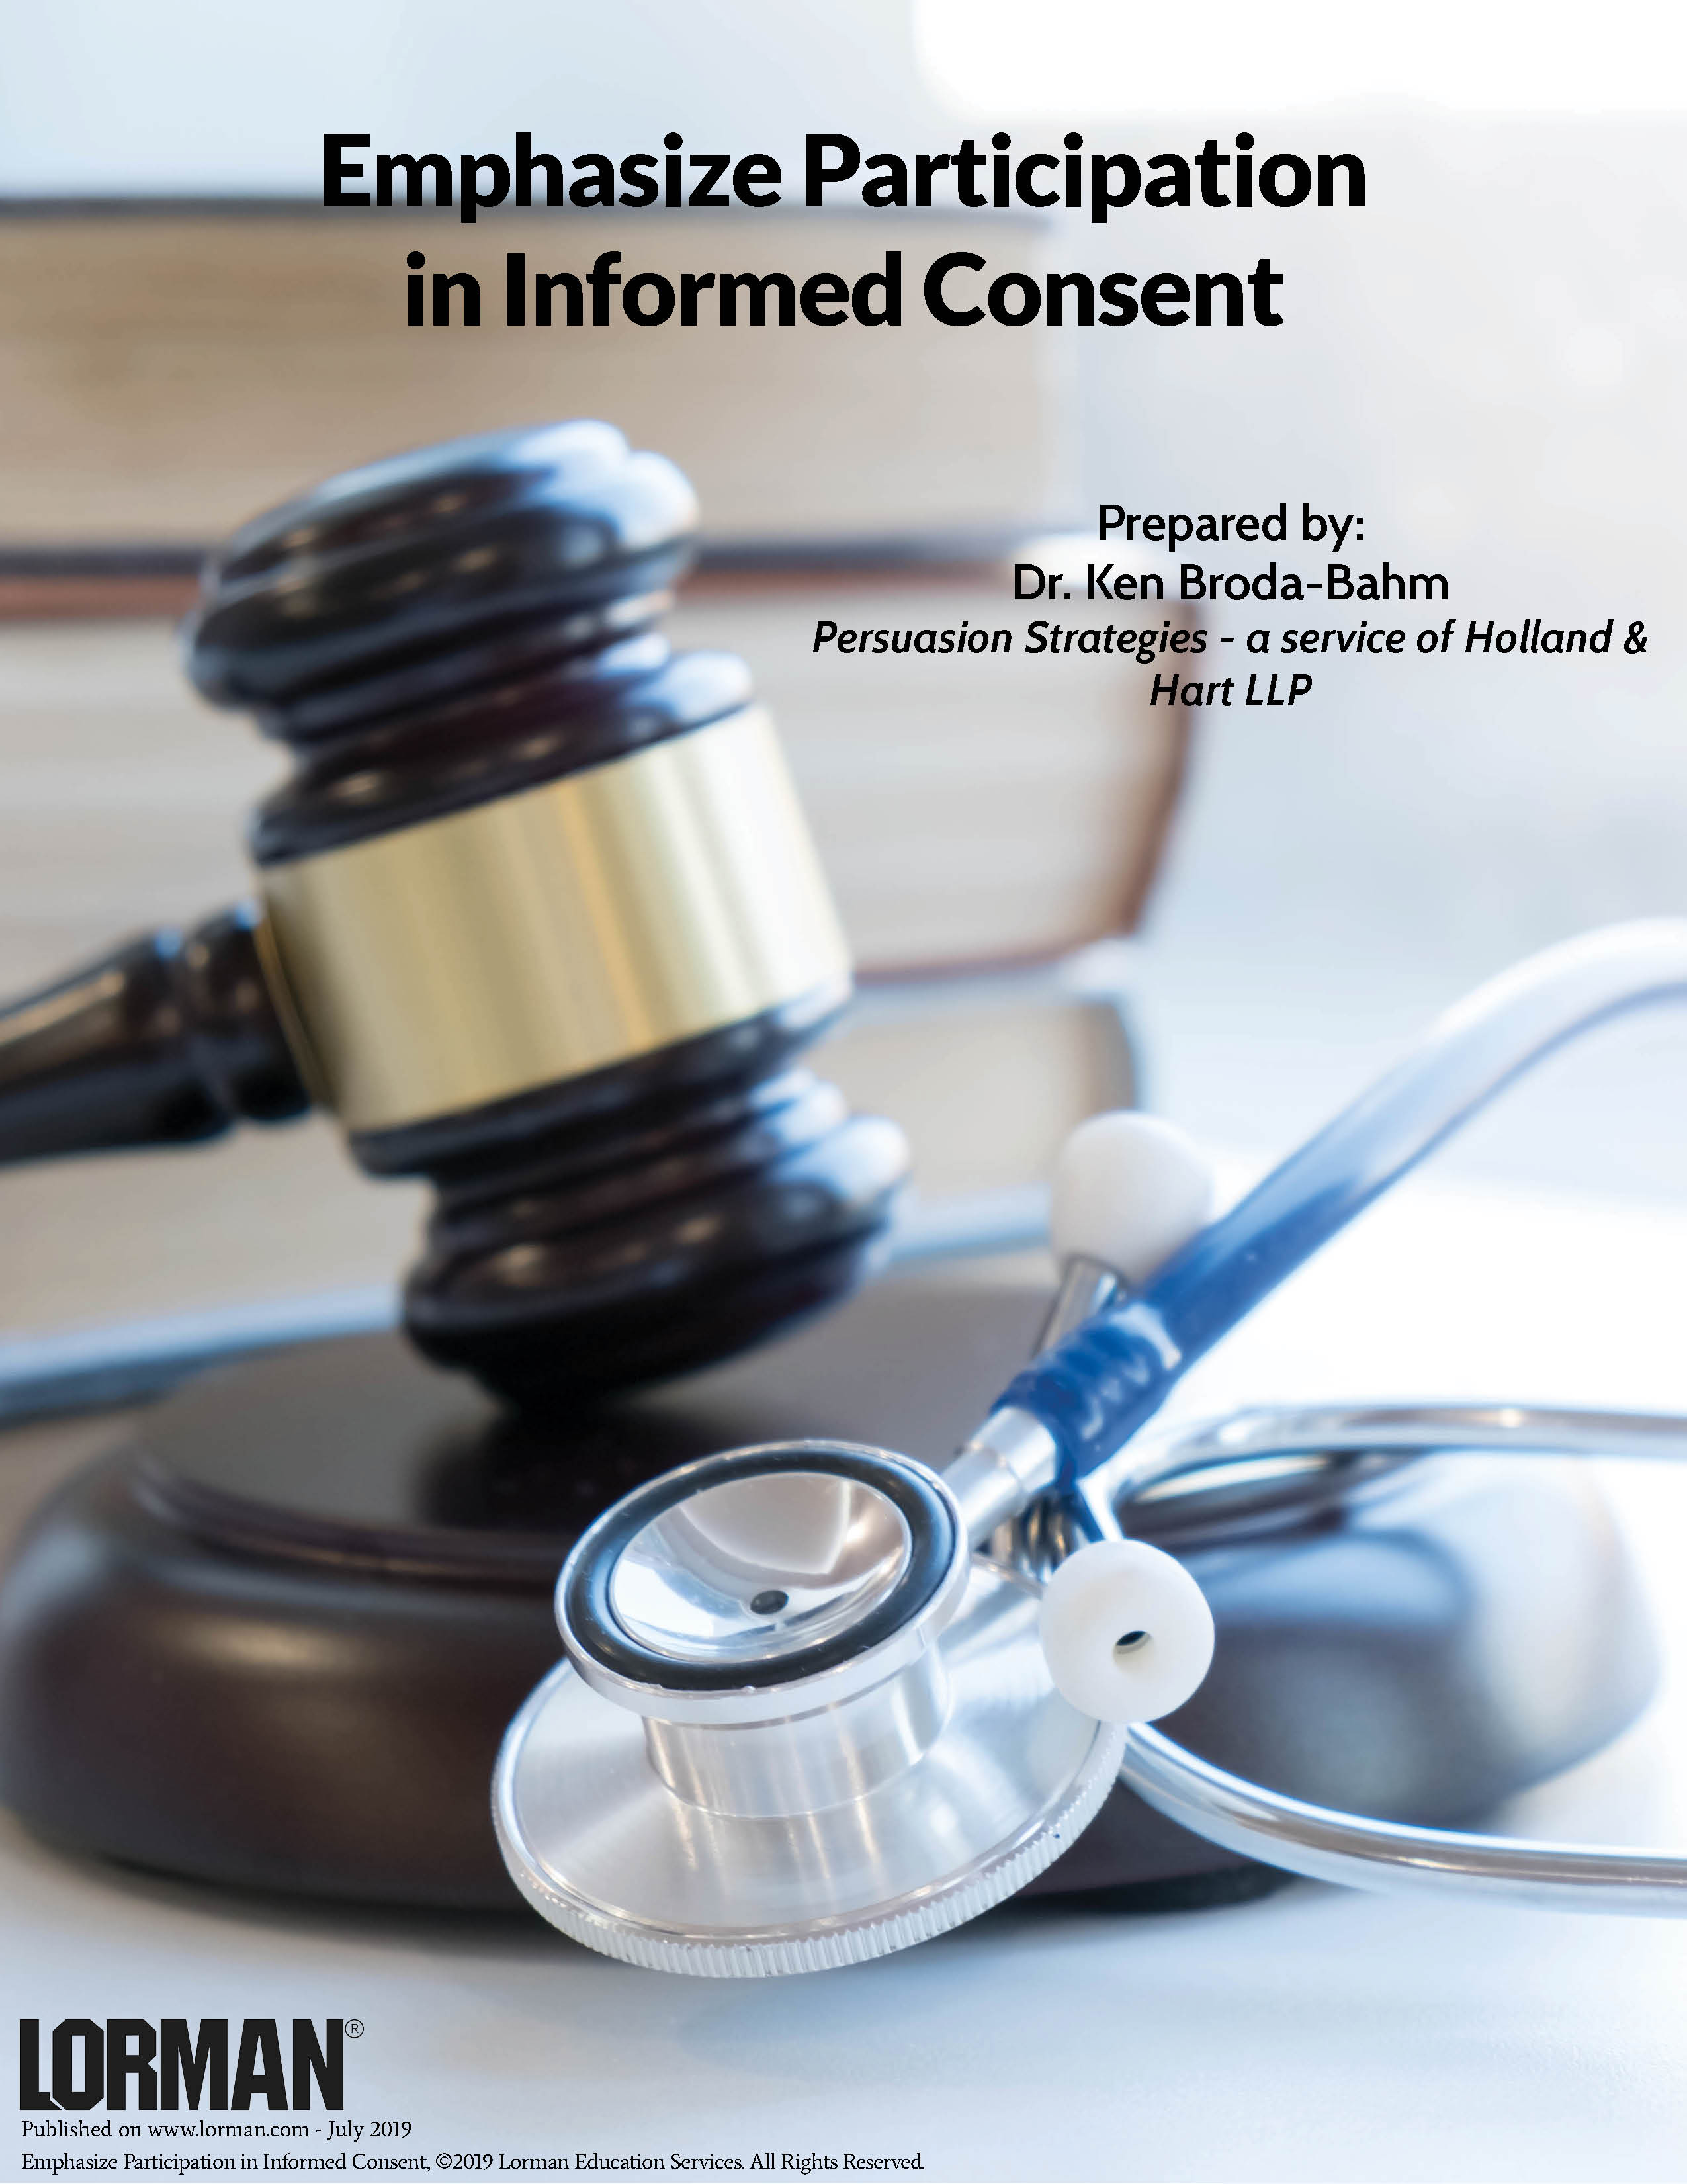 Emphasize Participation in Informed Consent